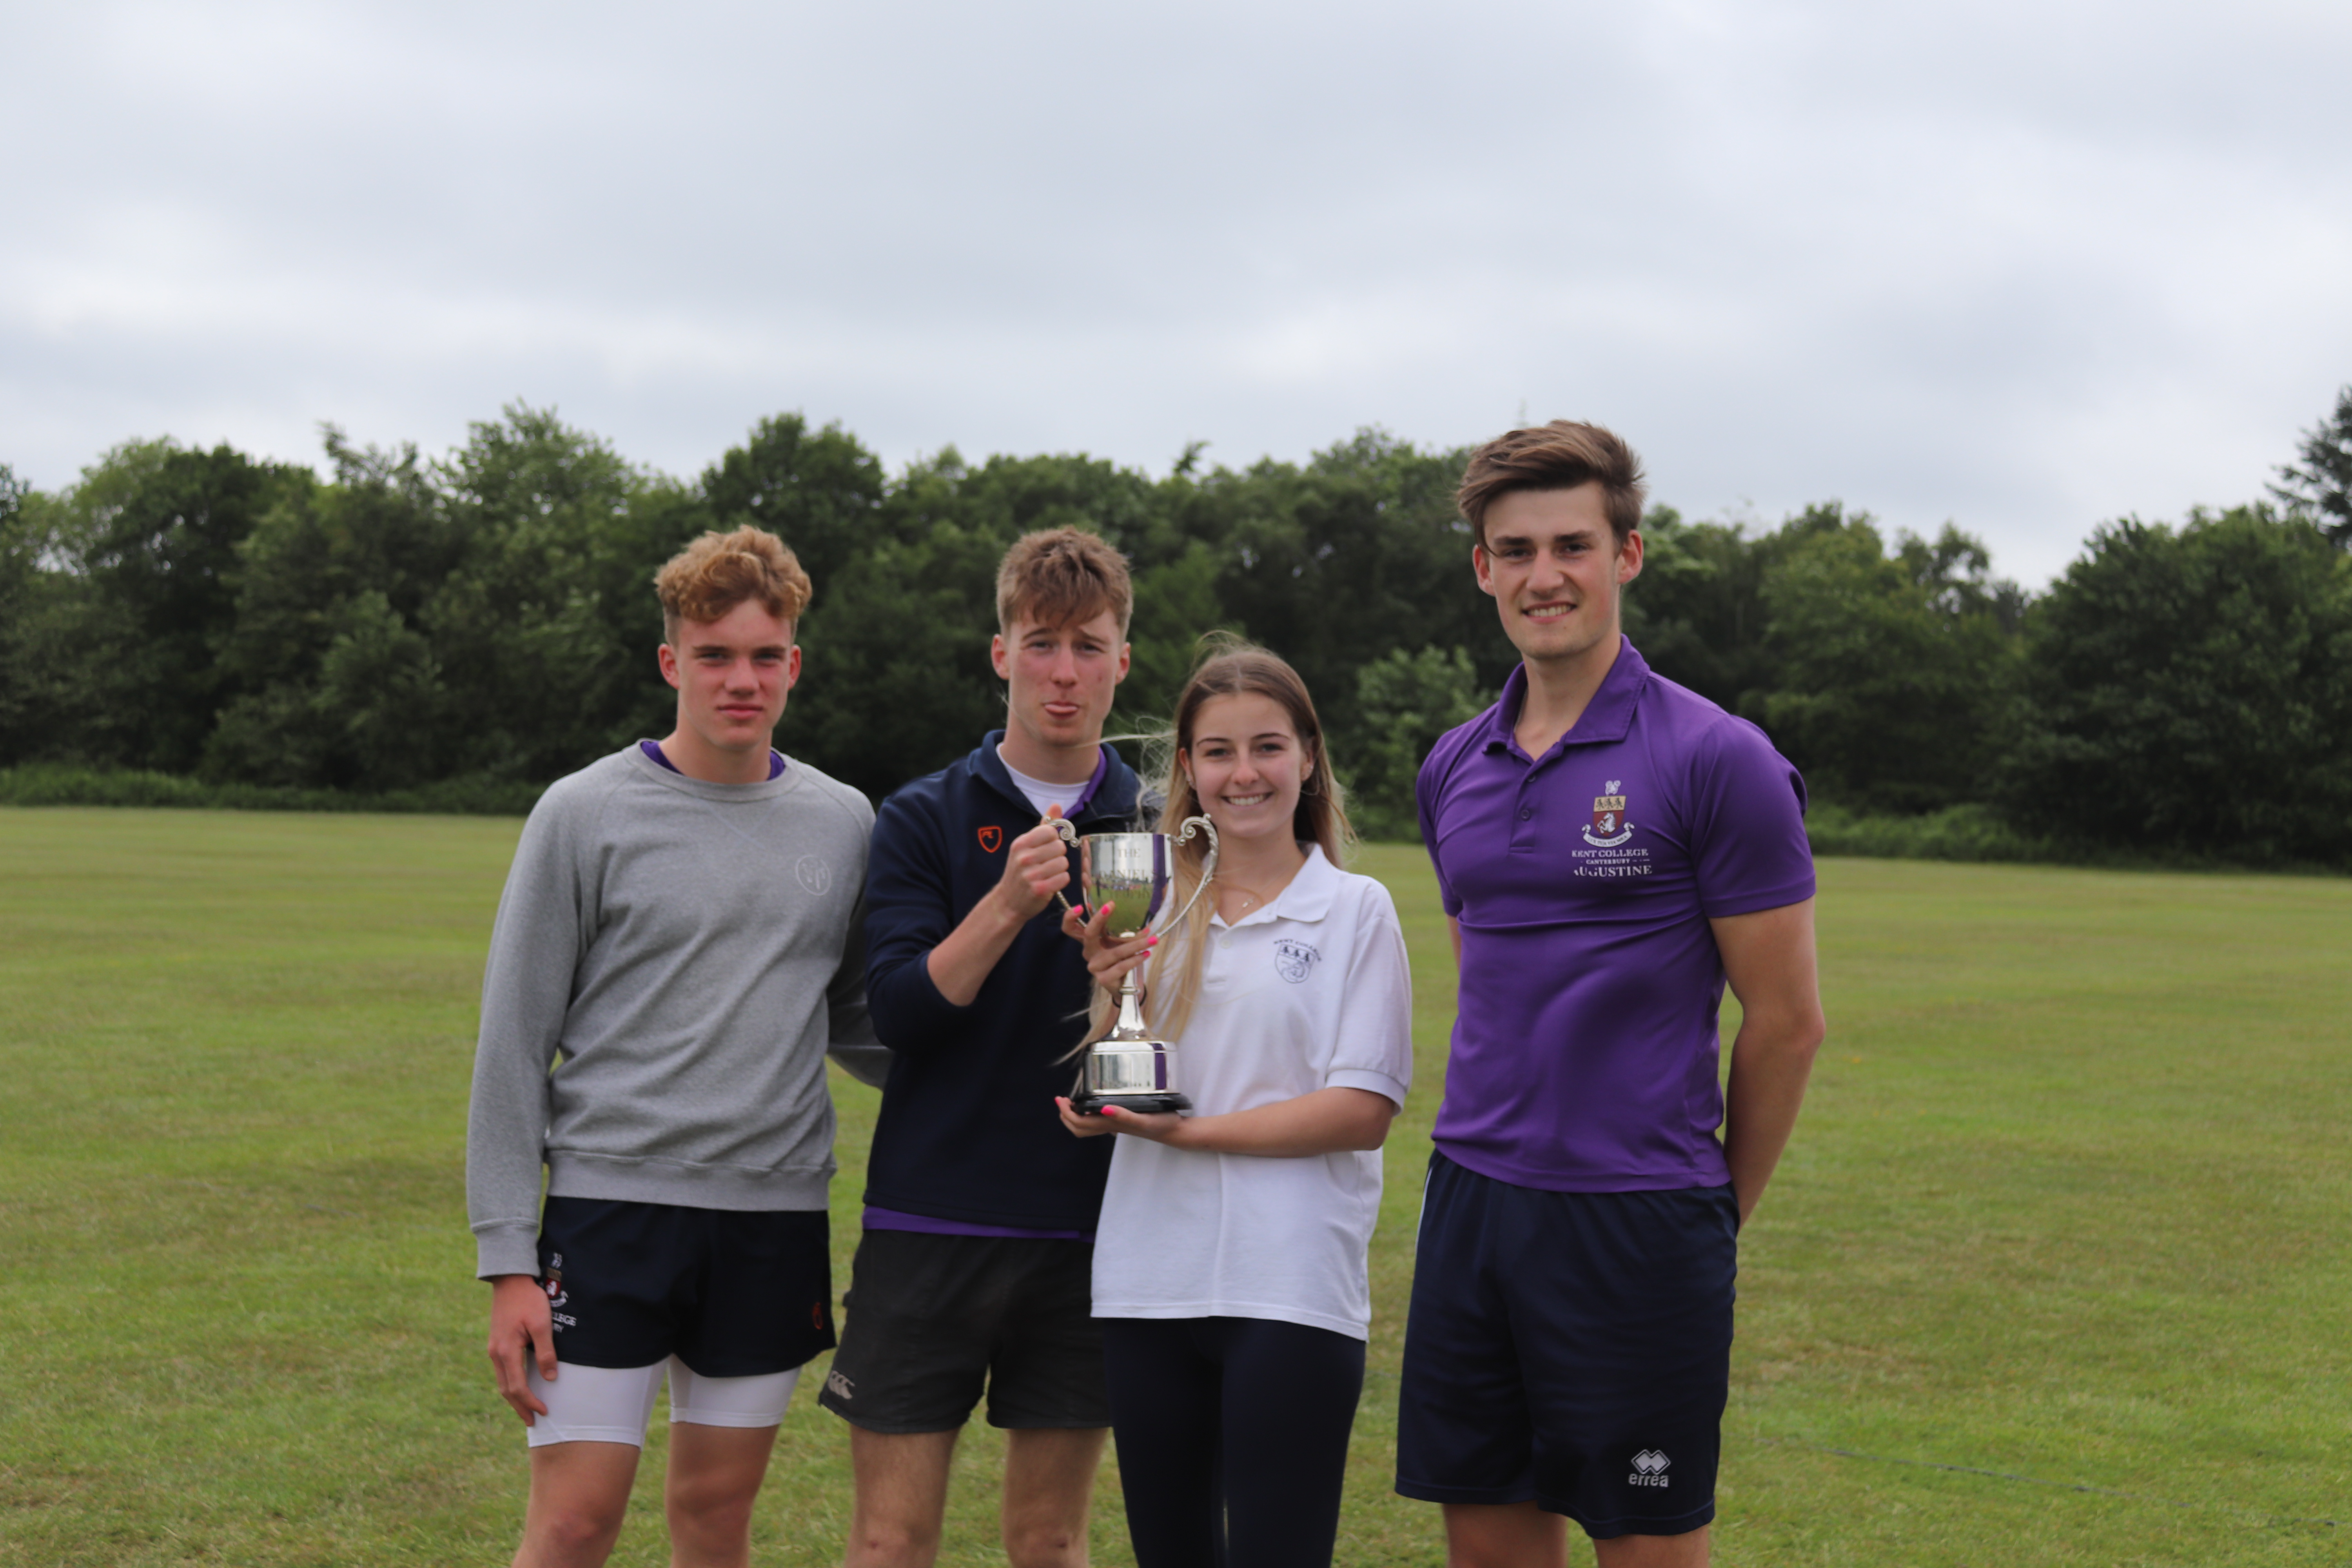 Sports Day 2019 - Augustine take home the trophy!